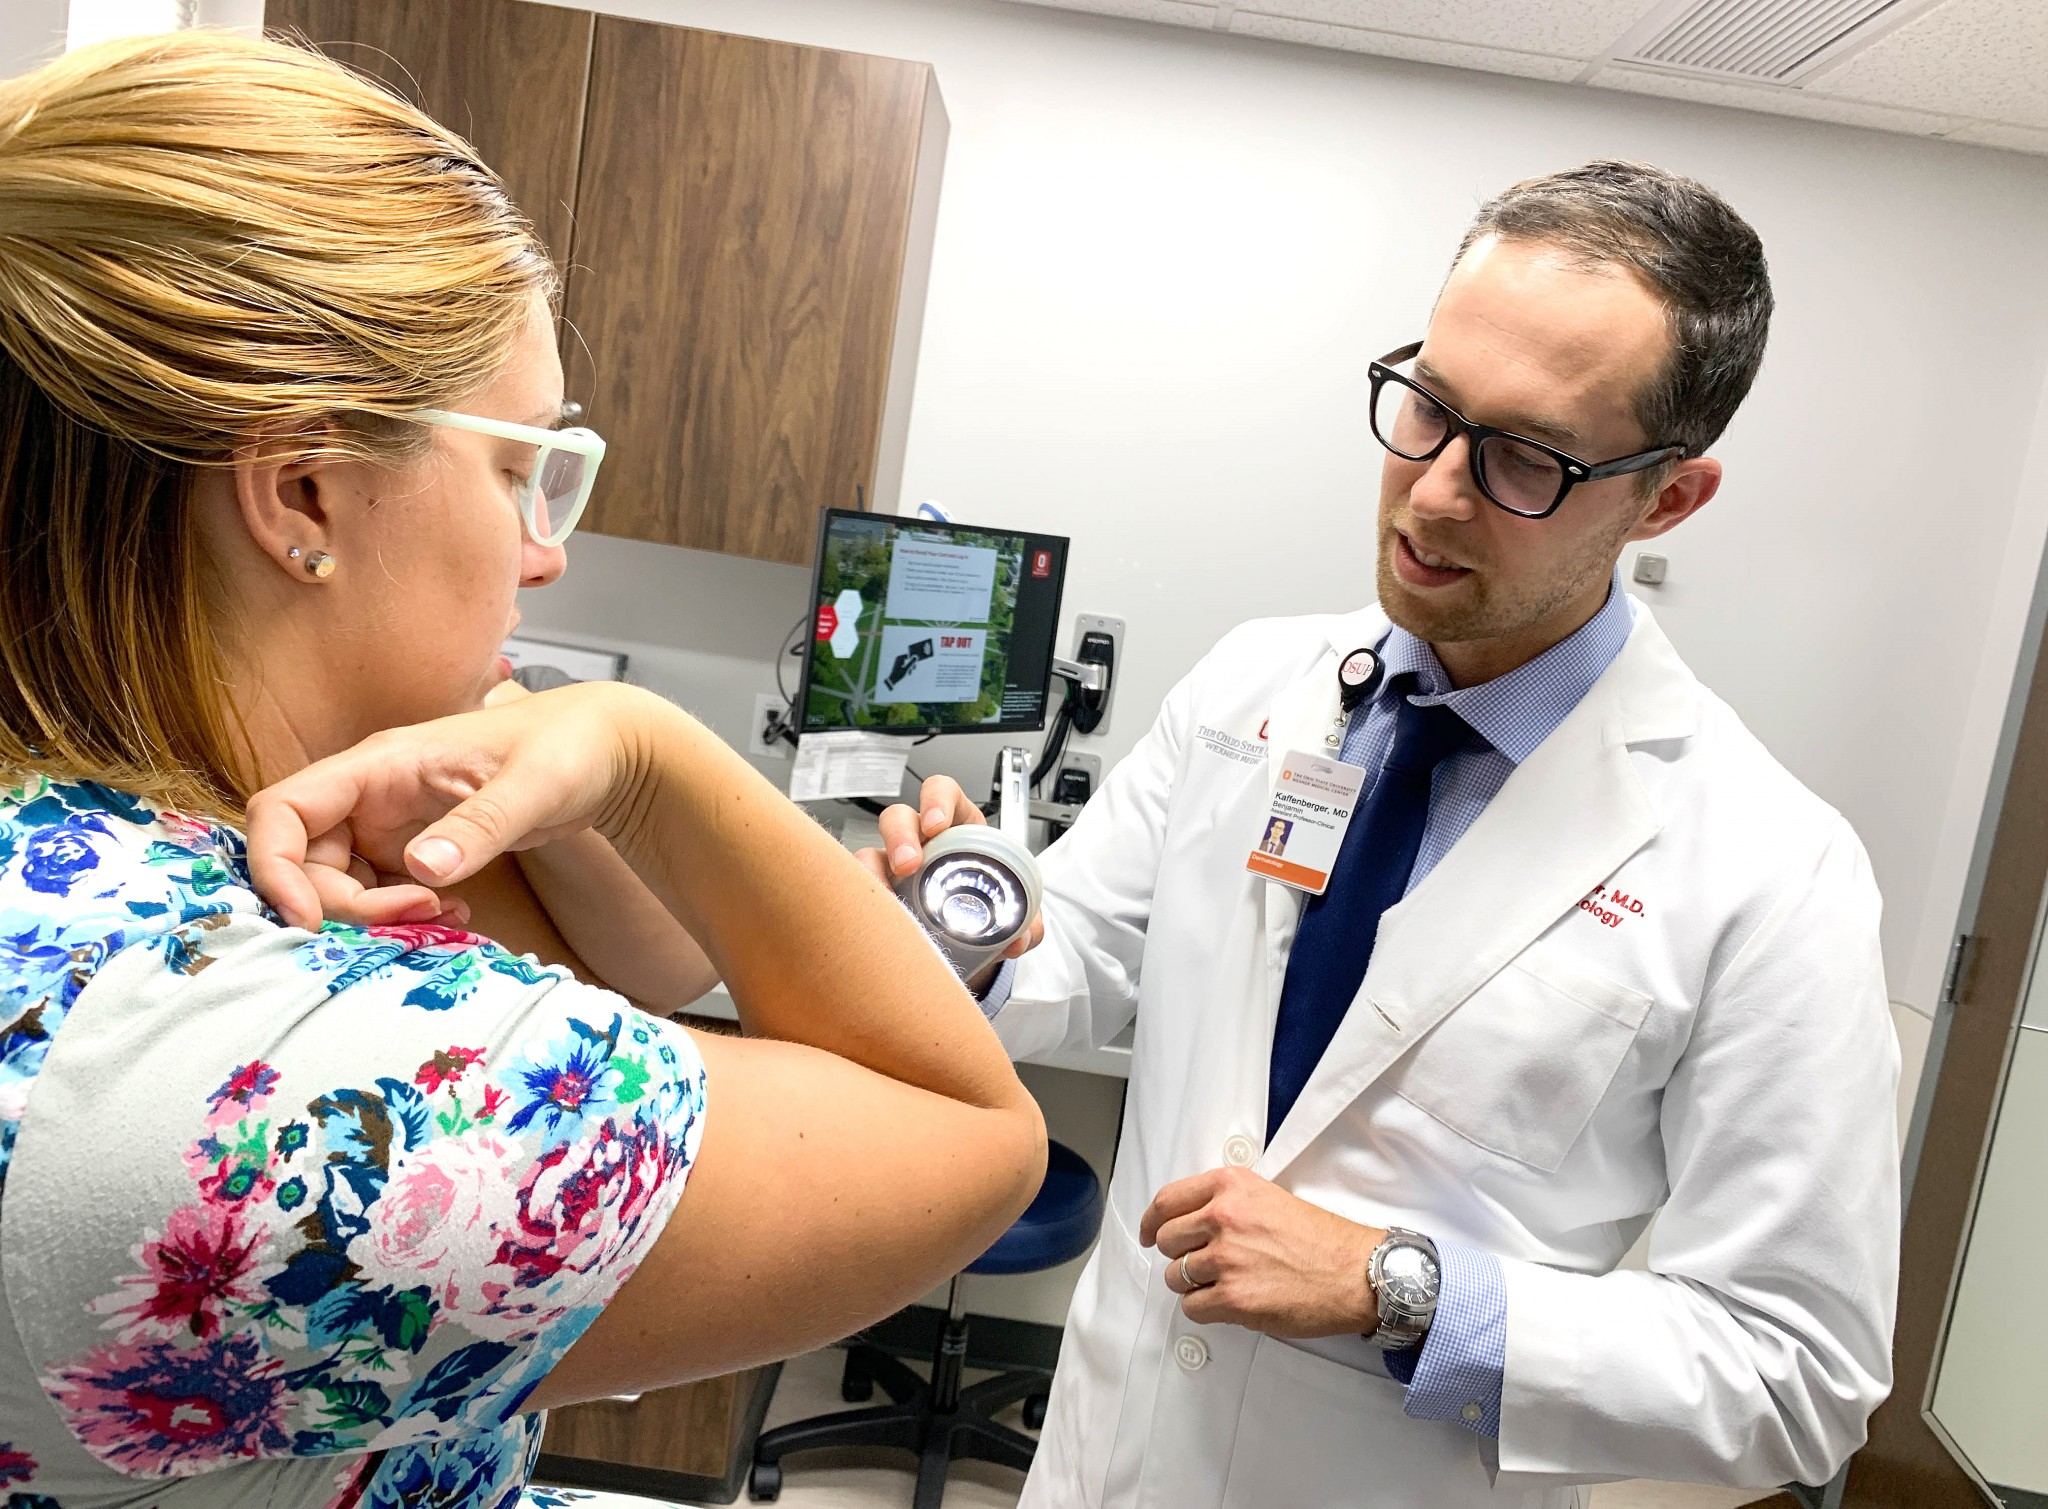 Dr. Benjamin Kaffenberger examines a patient at The Ohio State University Wexner Medical Center. He led a study that found healthy lifestyle changes, such as practicing good dental hygiene and eating fruit every day, may help improve psoriasis symptoms. (Photo courtesy of The Ohio State University Wexner Medical Center)